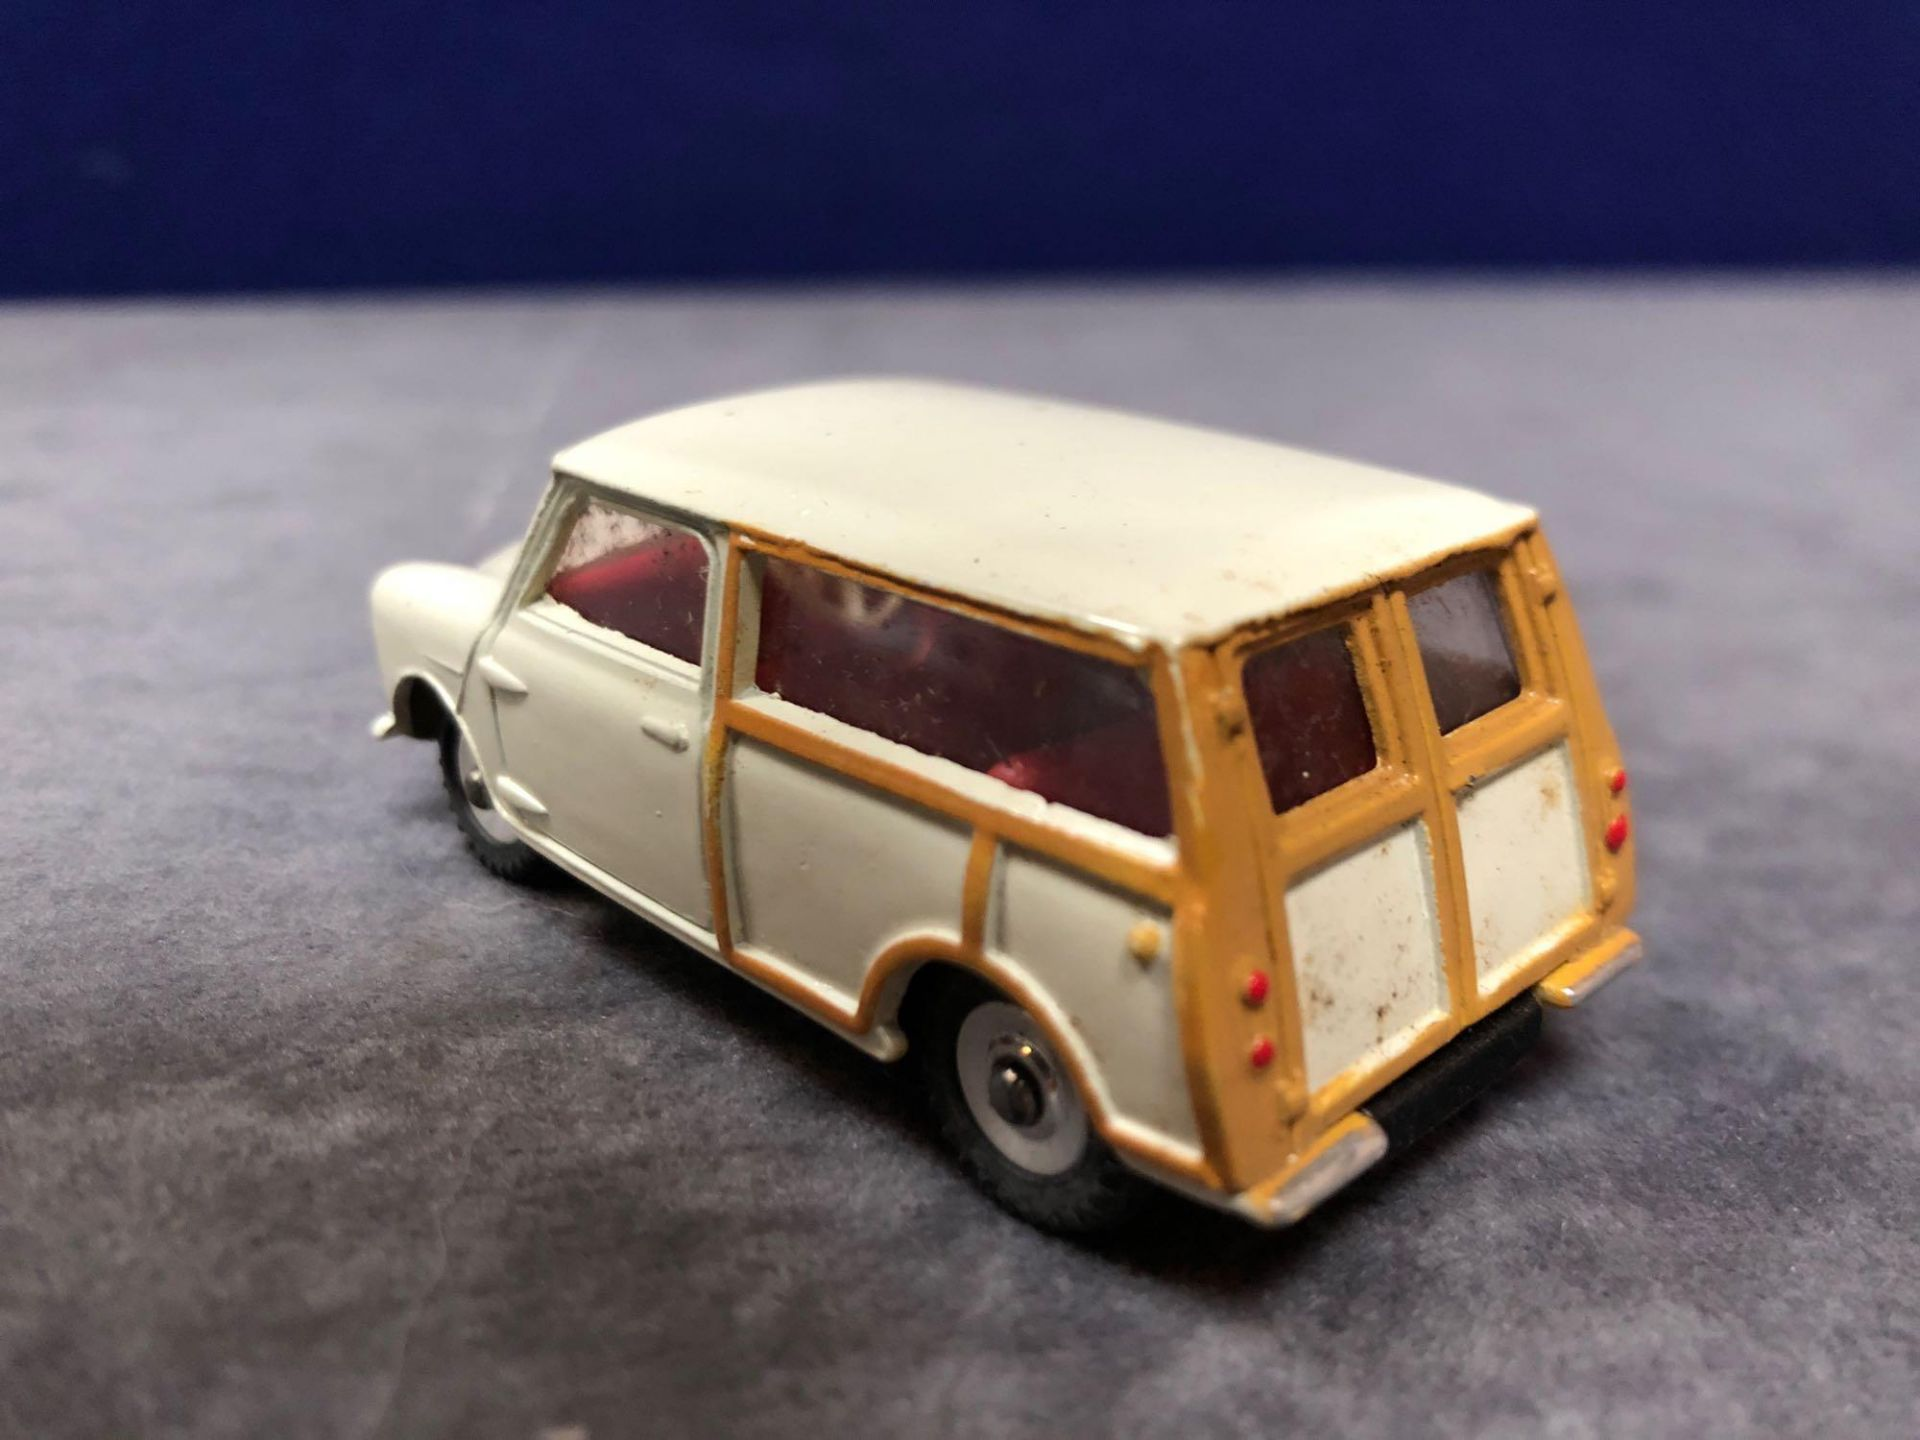 Dinky #197 Morris Mini Traveller Cream - Cream Body, Tan Woodwork And Red Interior. Mint in - Image 3 of 4